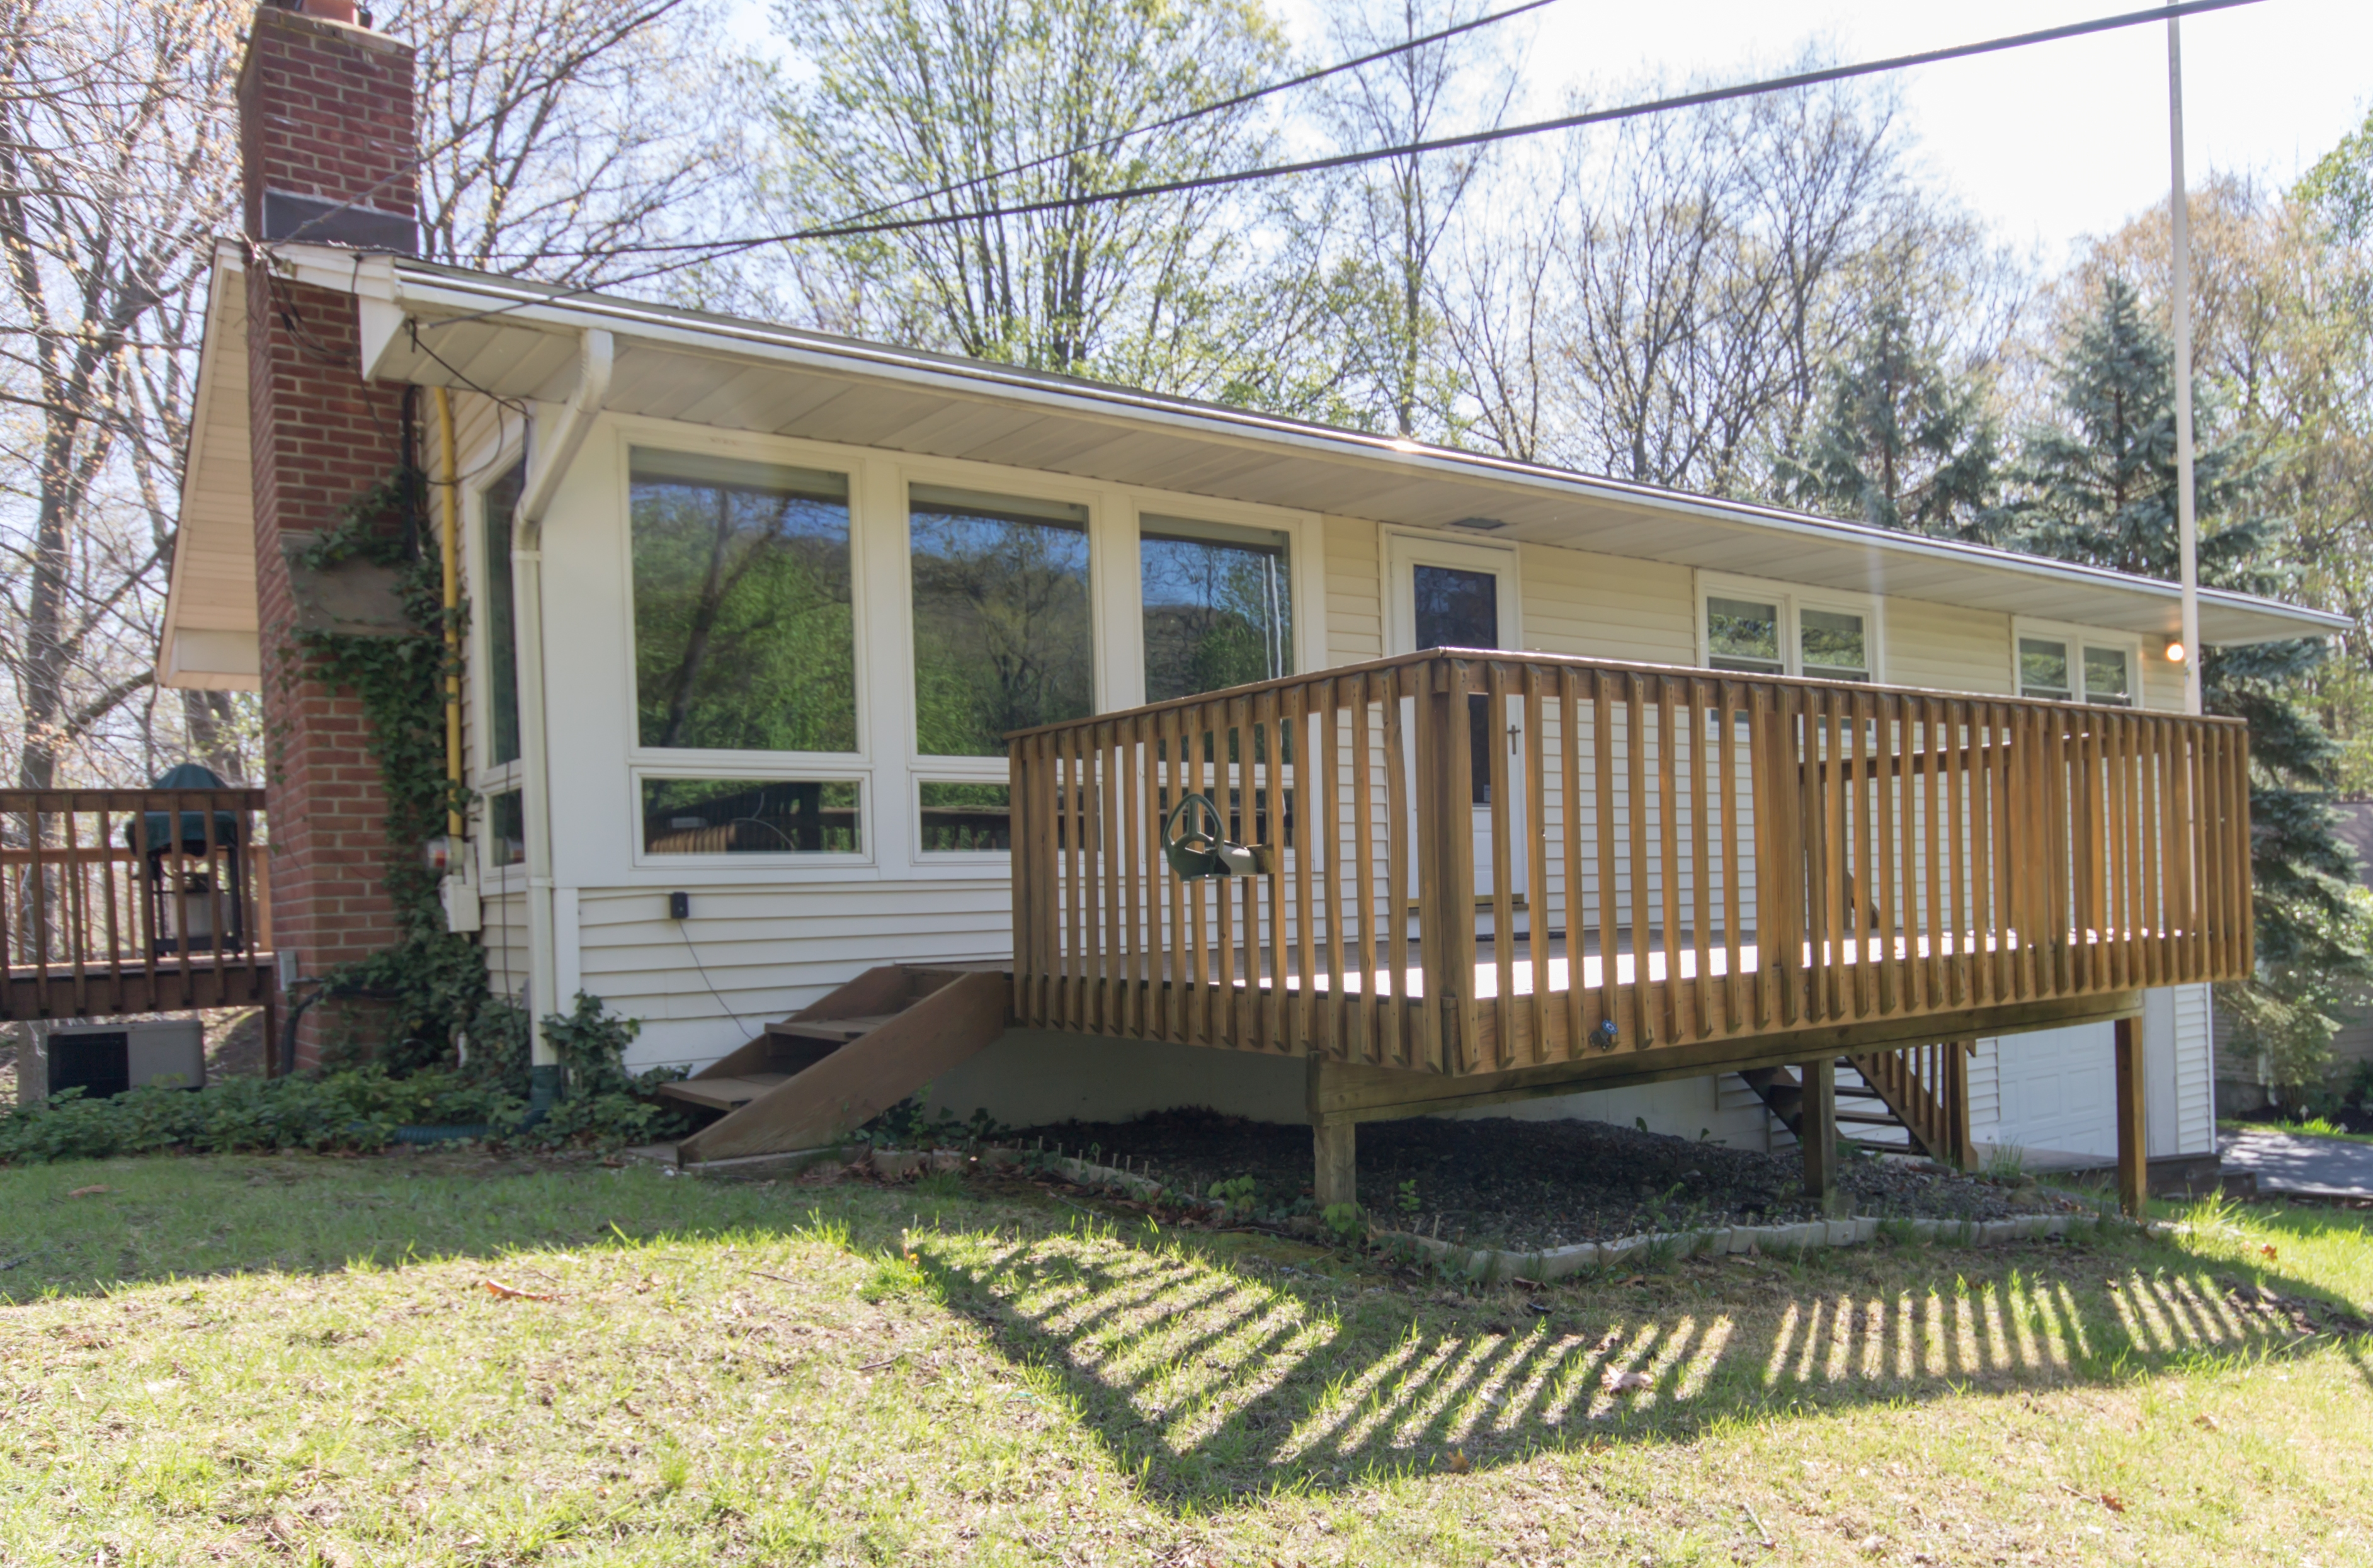 Single Family Home for Sale at Cozy Ranch 12 Mountain Road Danbury, Connecticut, 06810 United States